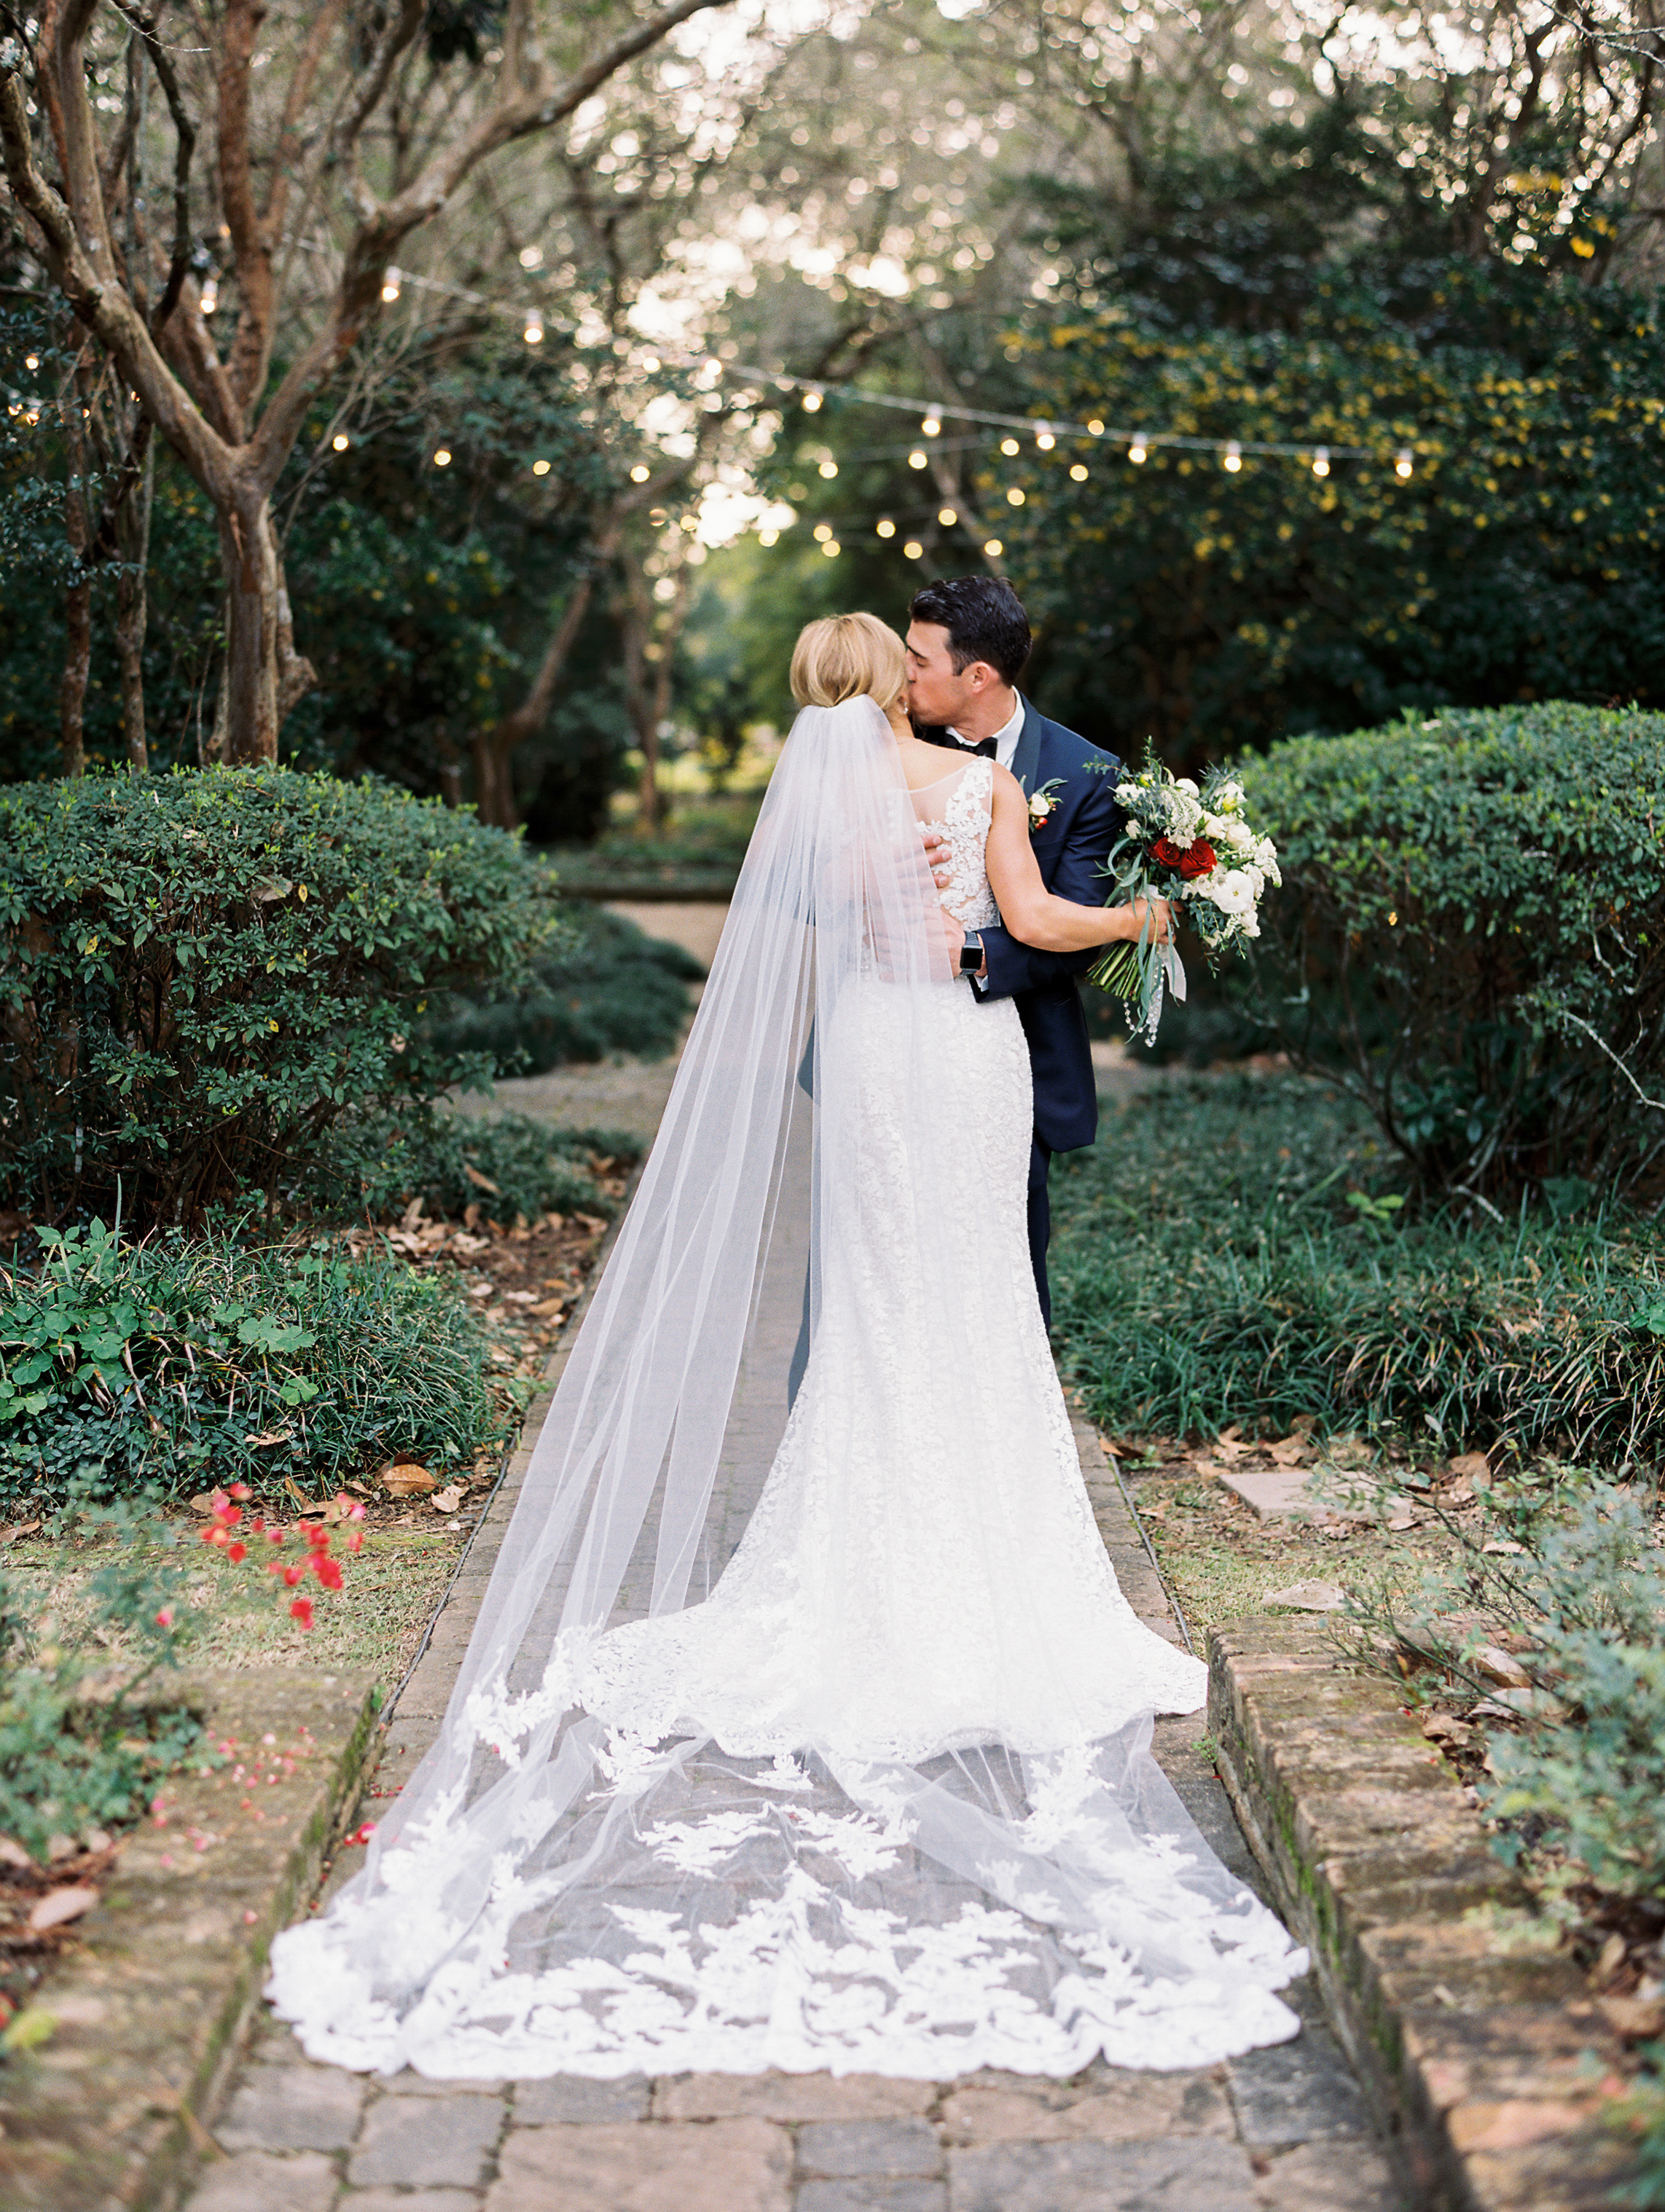 Southern Fete, Southern Wedding, Bride and Groom First Look, Wedding dress details, Sarah Beth Photography, Peregrin's Florist